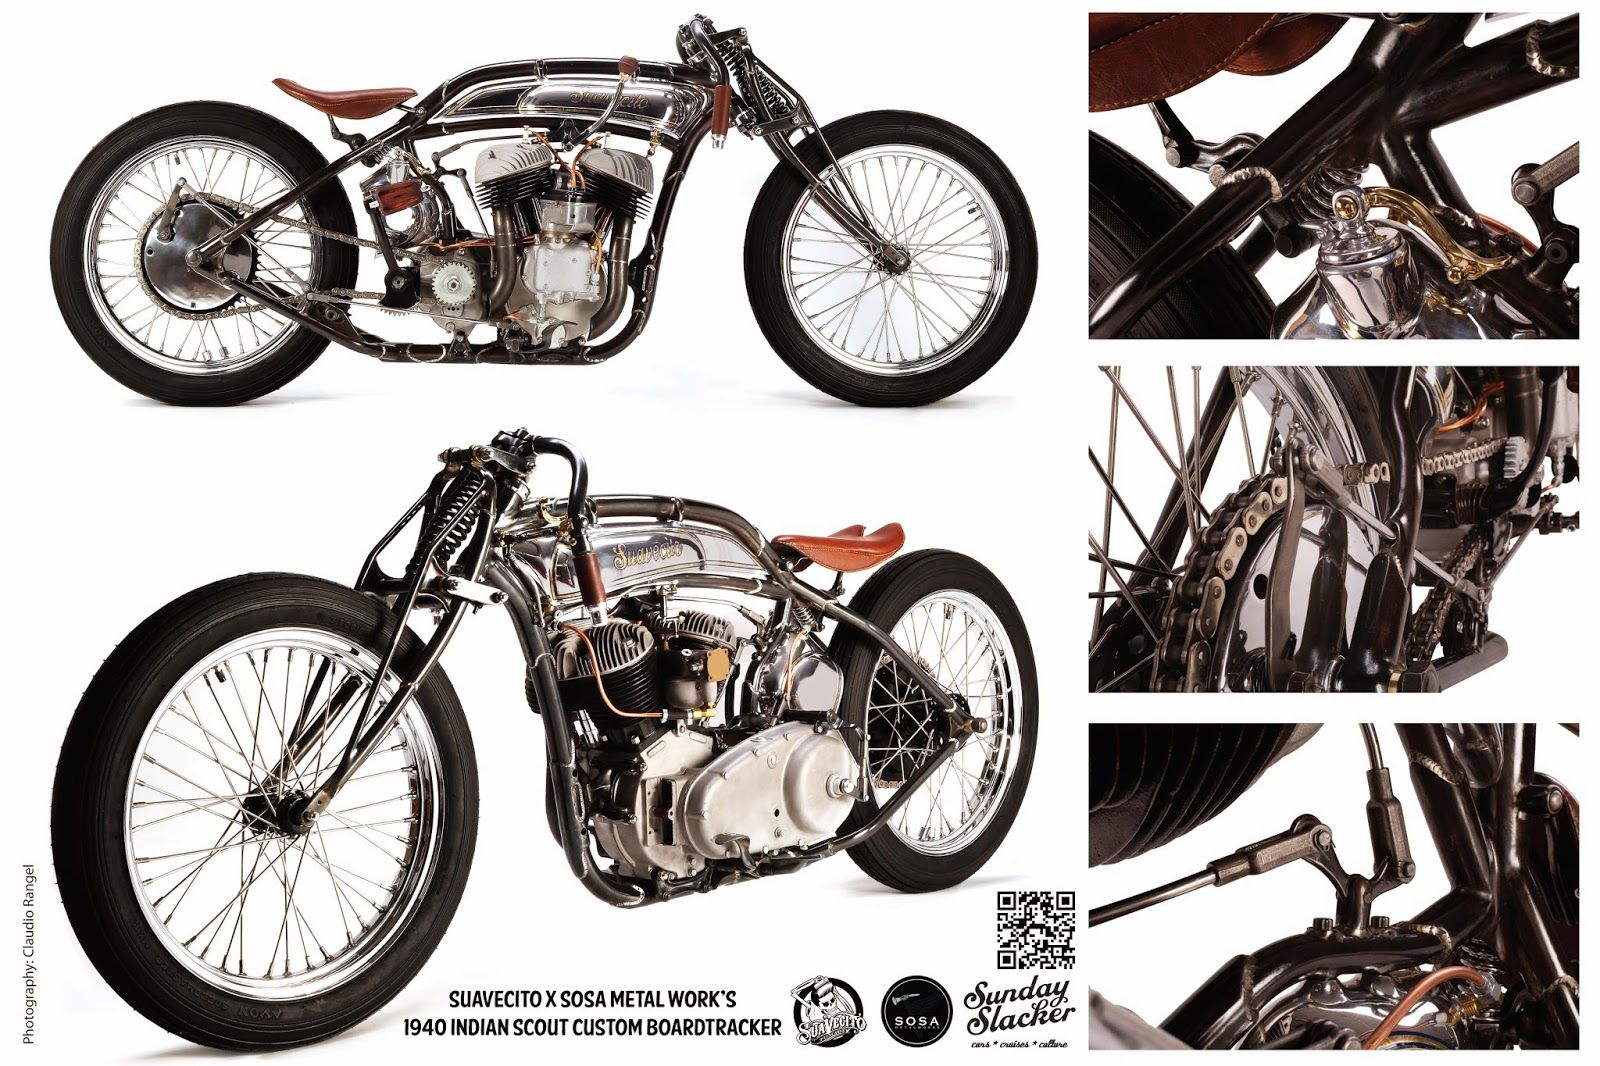 1940 indian scout custom board tracker grease n gasoline bike 1940 indian scout custom board tracker grease n gasoline malvernweather Choice Image